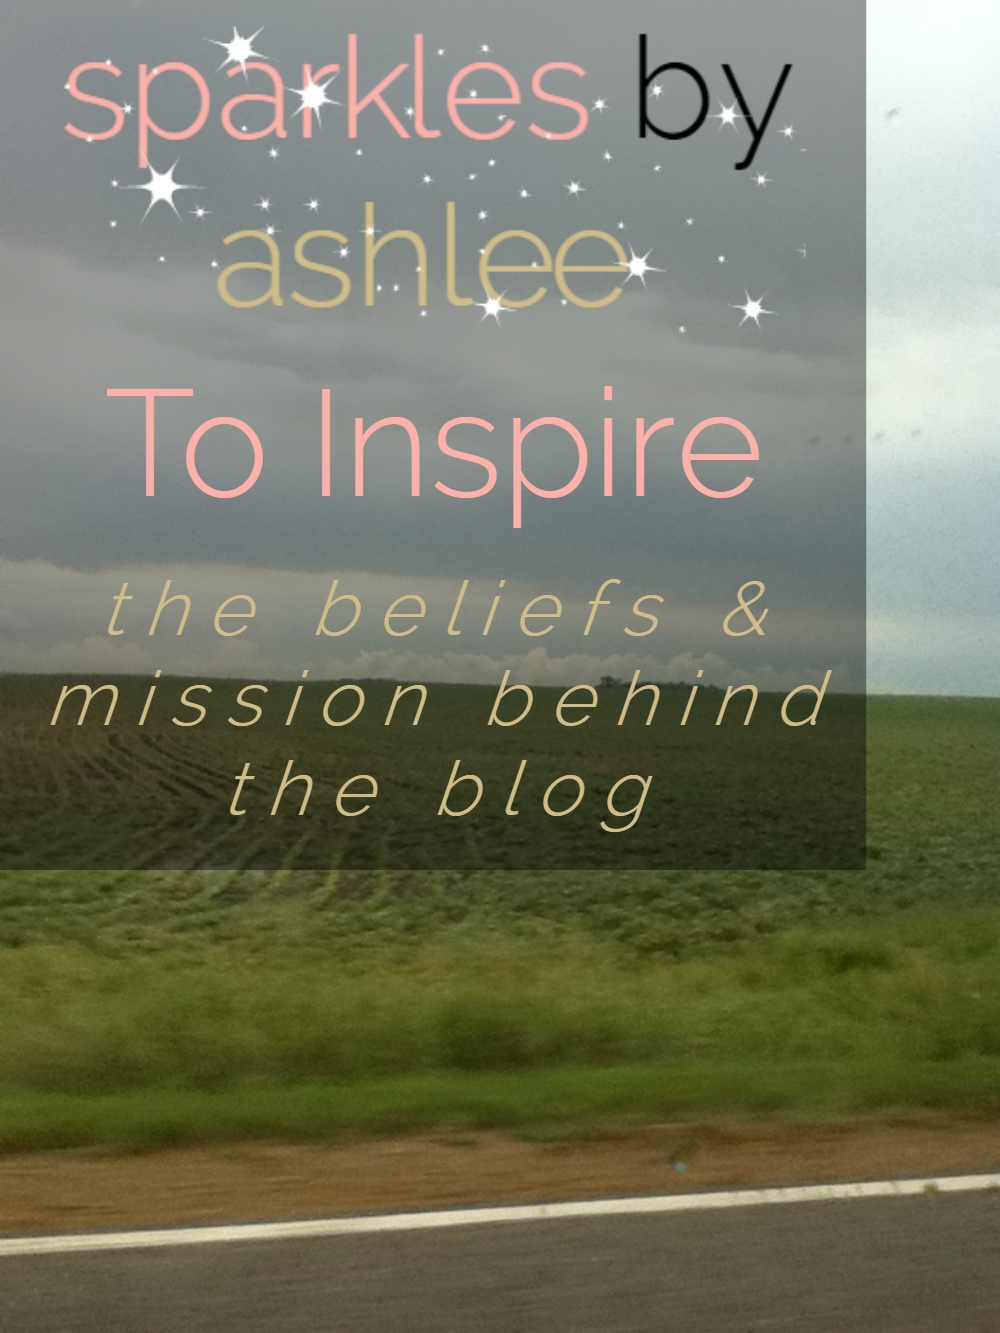 To-Inspire-Sparkles-by-Ashlee.jpg